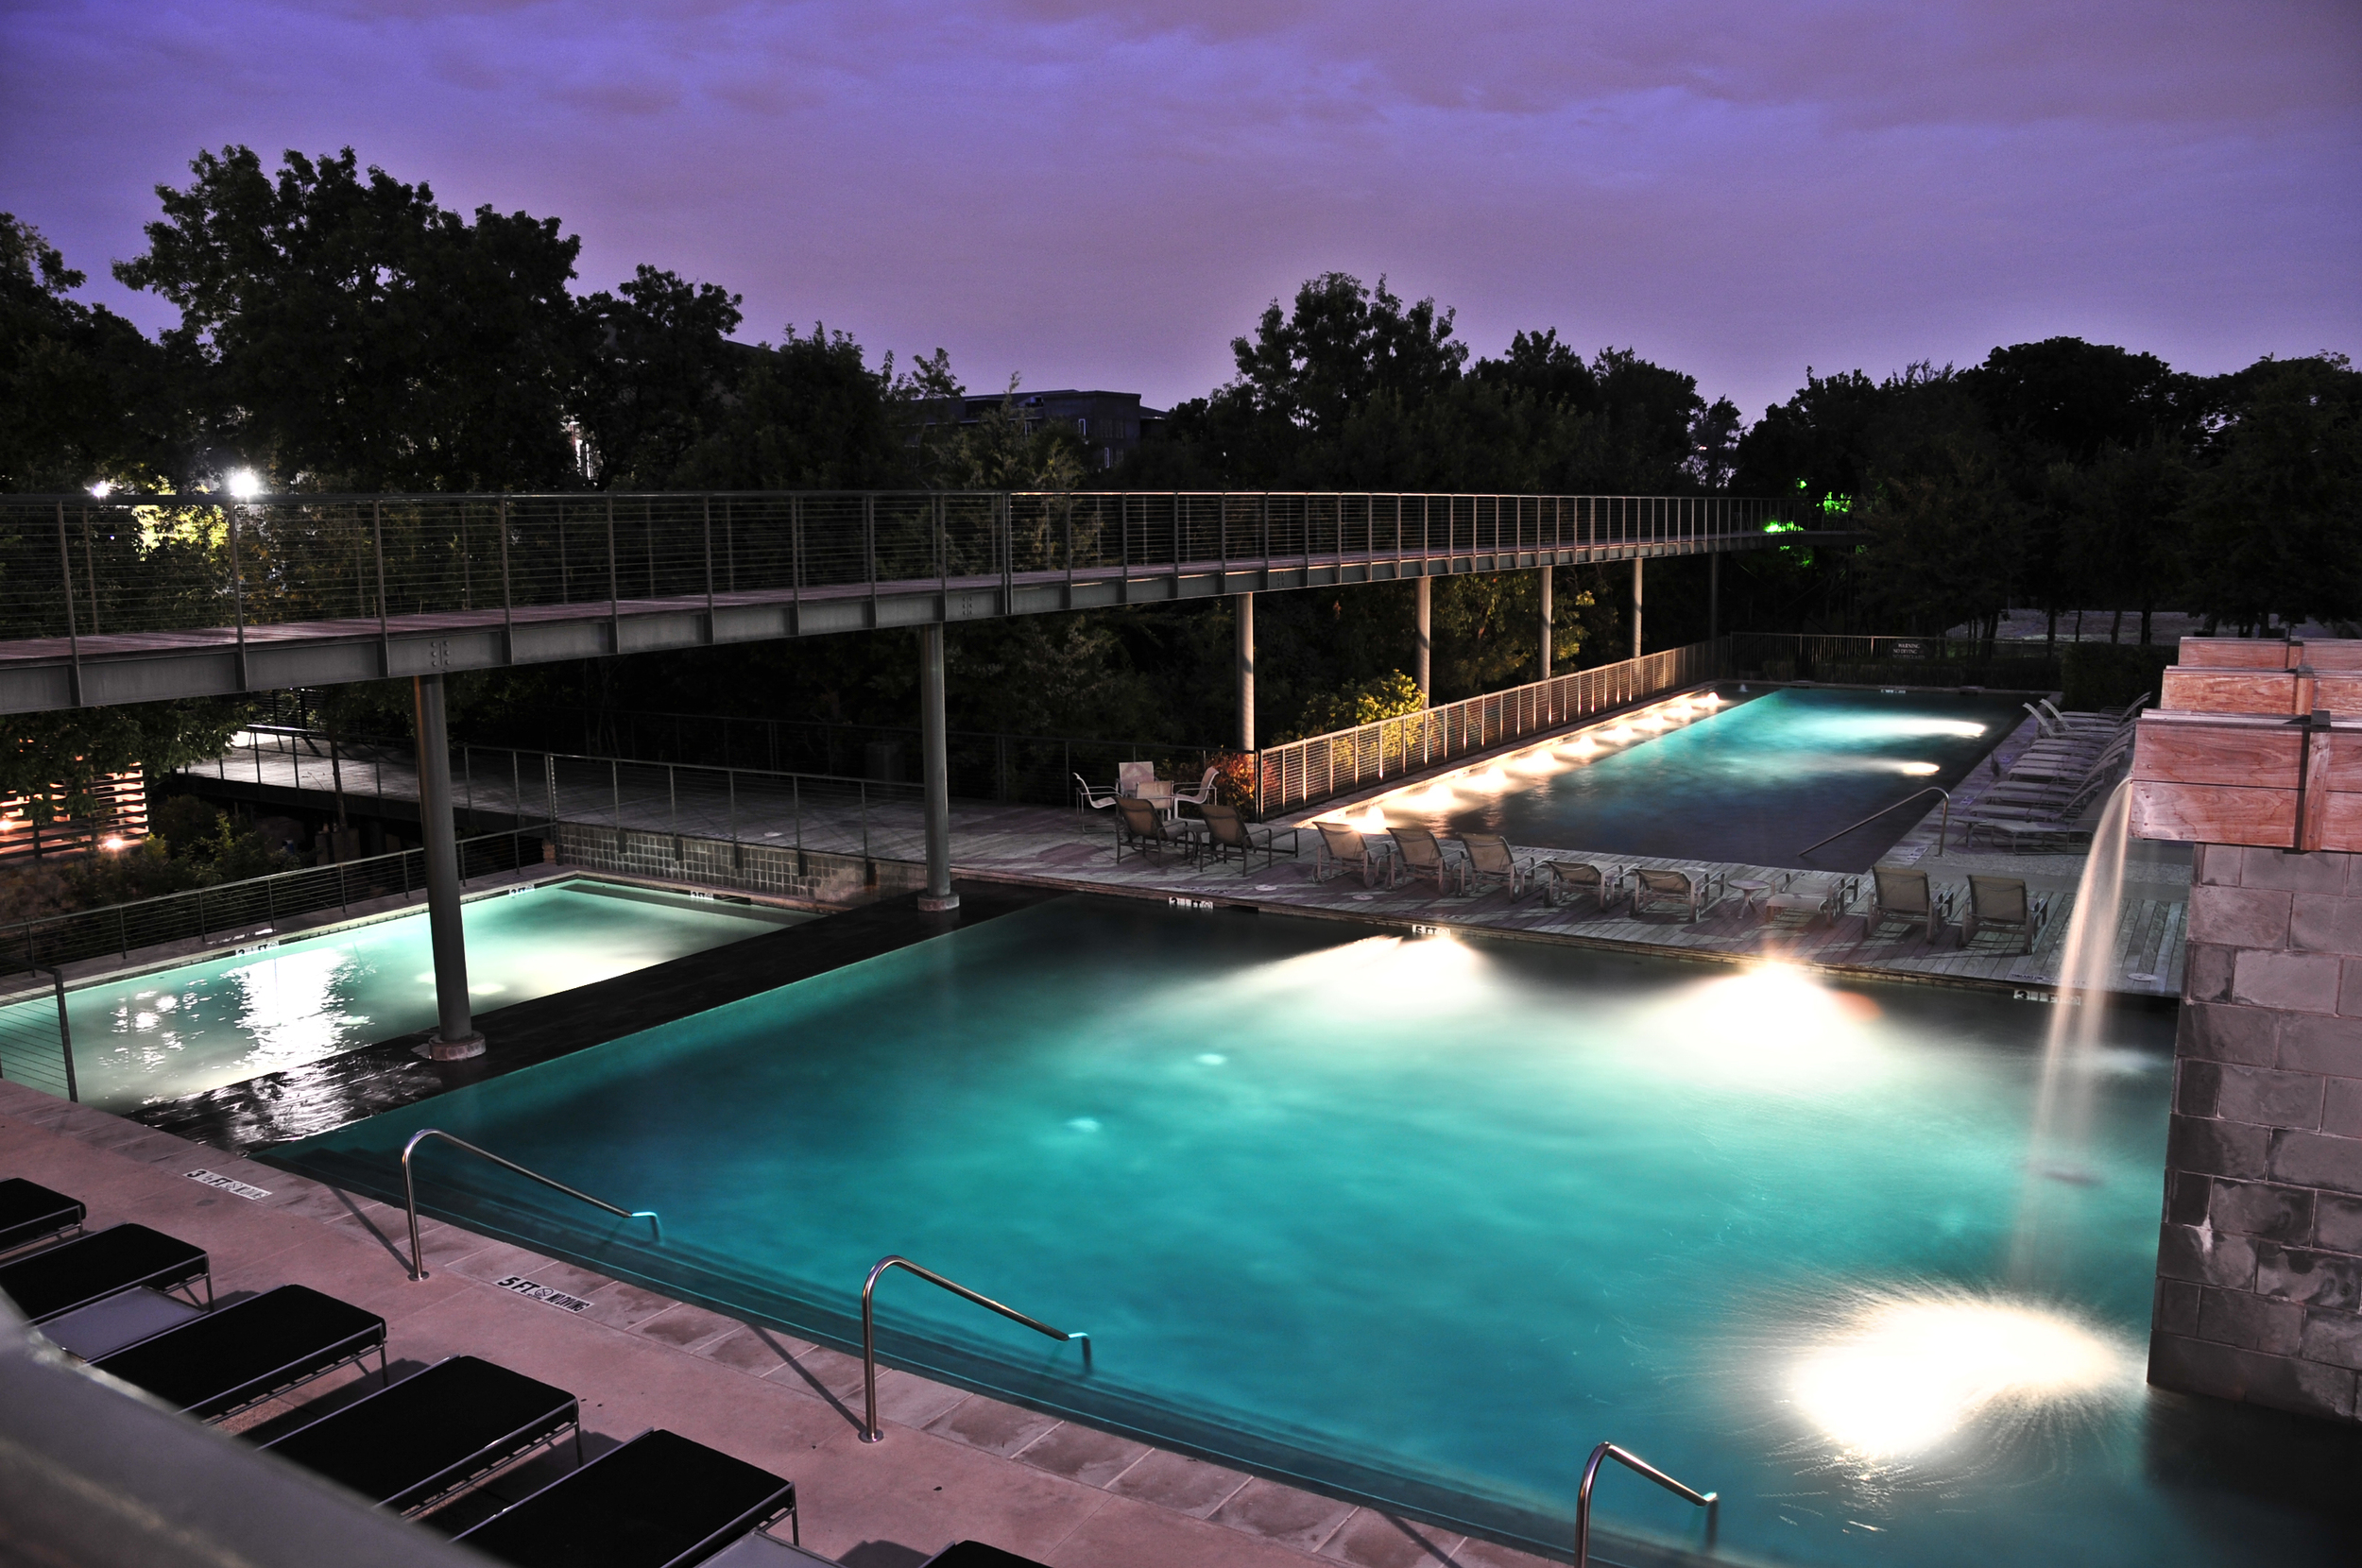 AR_Ext_DryCreekLodge_Night_Pool_EB-3.jpg